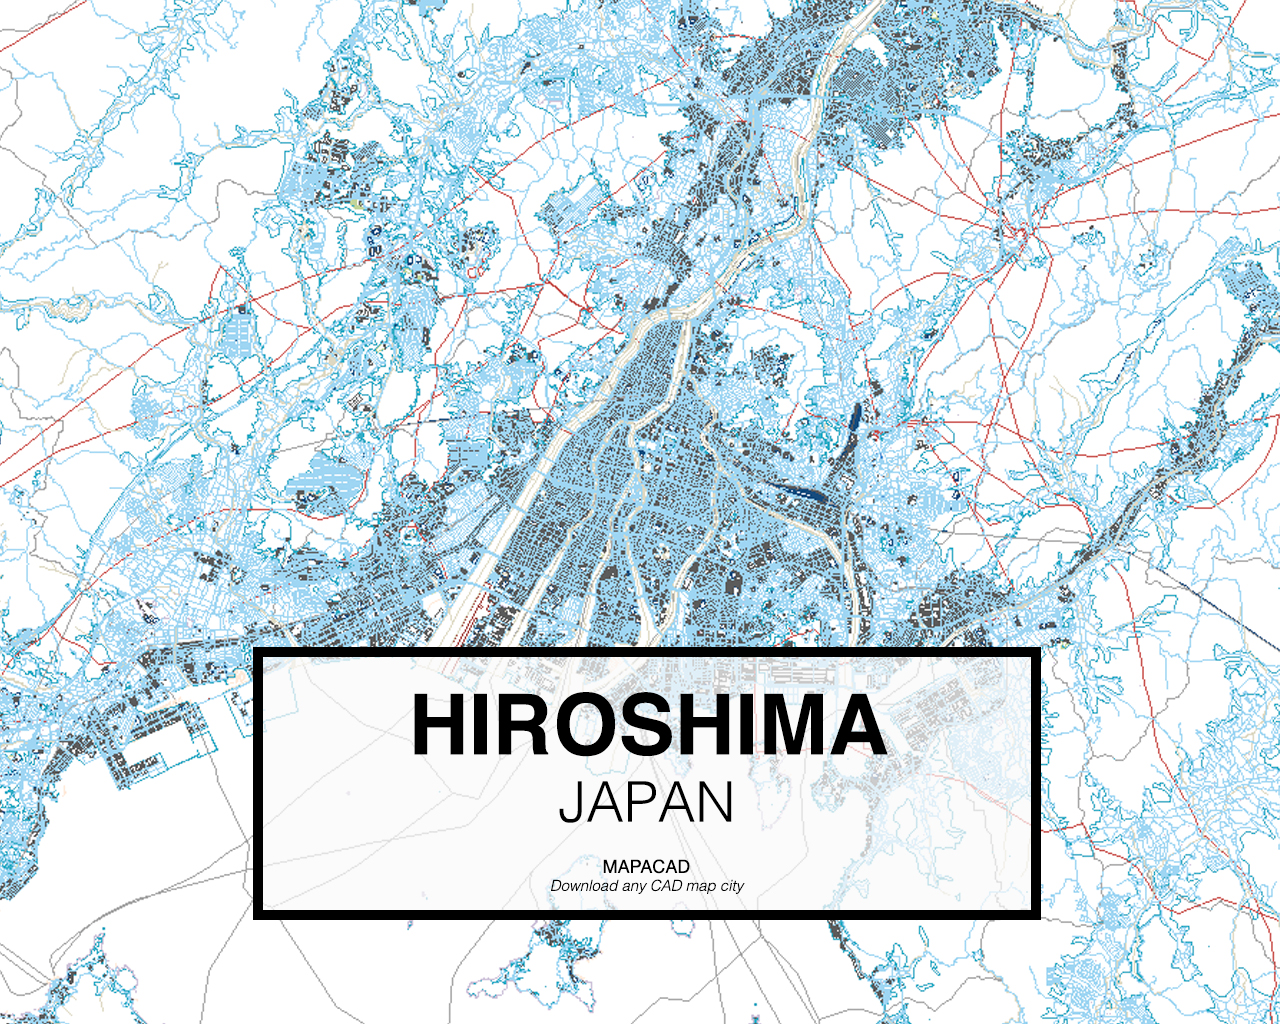 Hiroshima dwg mapacad hiroshima japan 01 mapacad download map cad dwg gumiabroncs Gallery